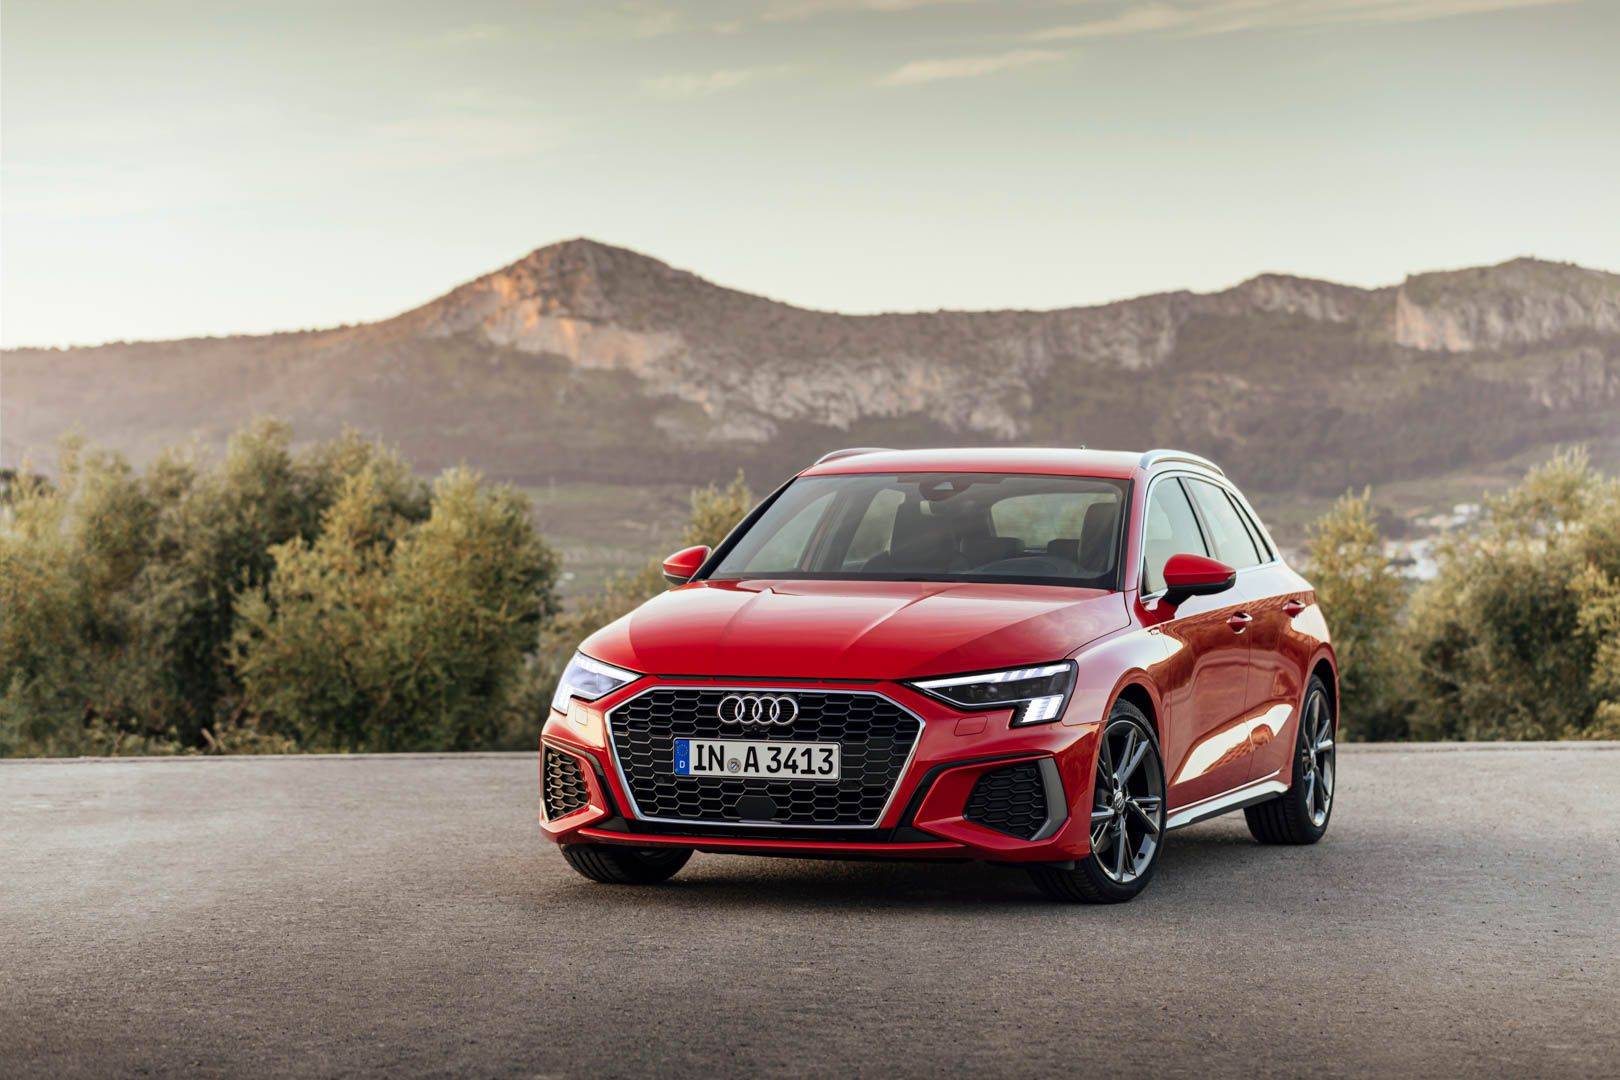 Check Out The 2020 Audi A3 Sportback In New Photo Gallery Audi A3 Sportback Audi Audi A3